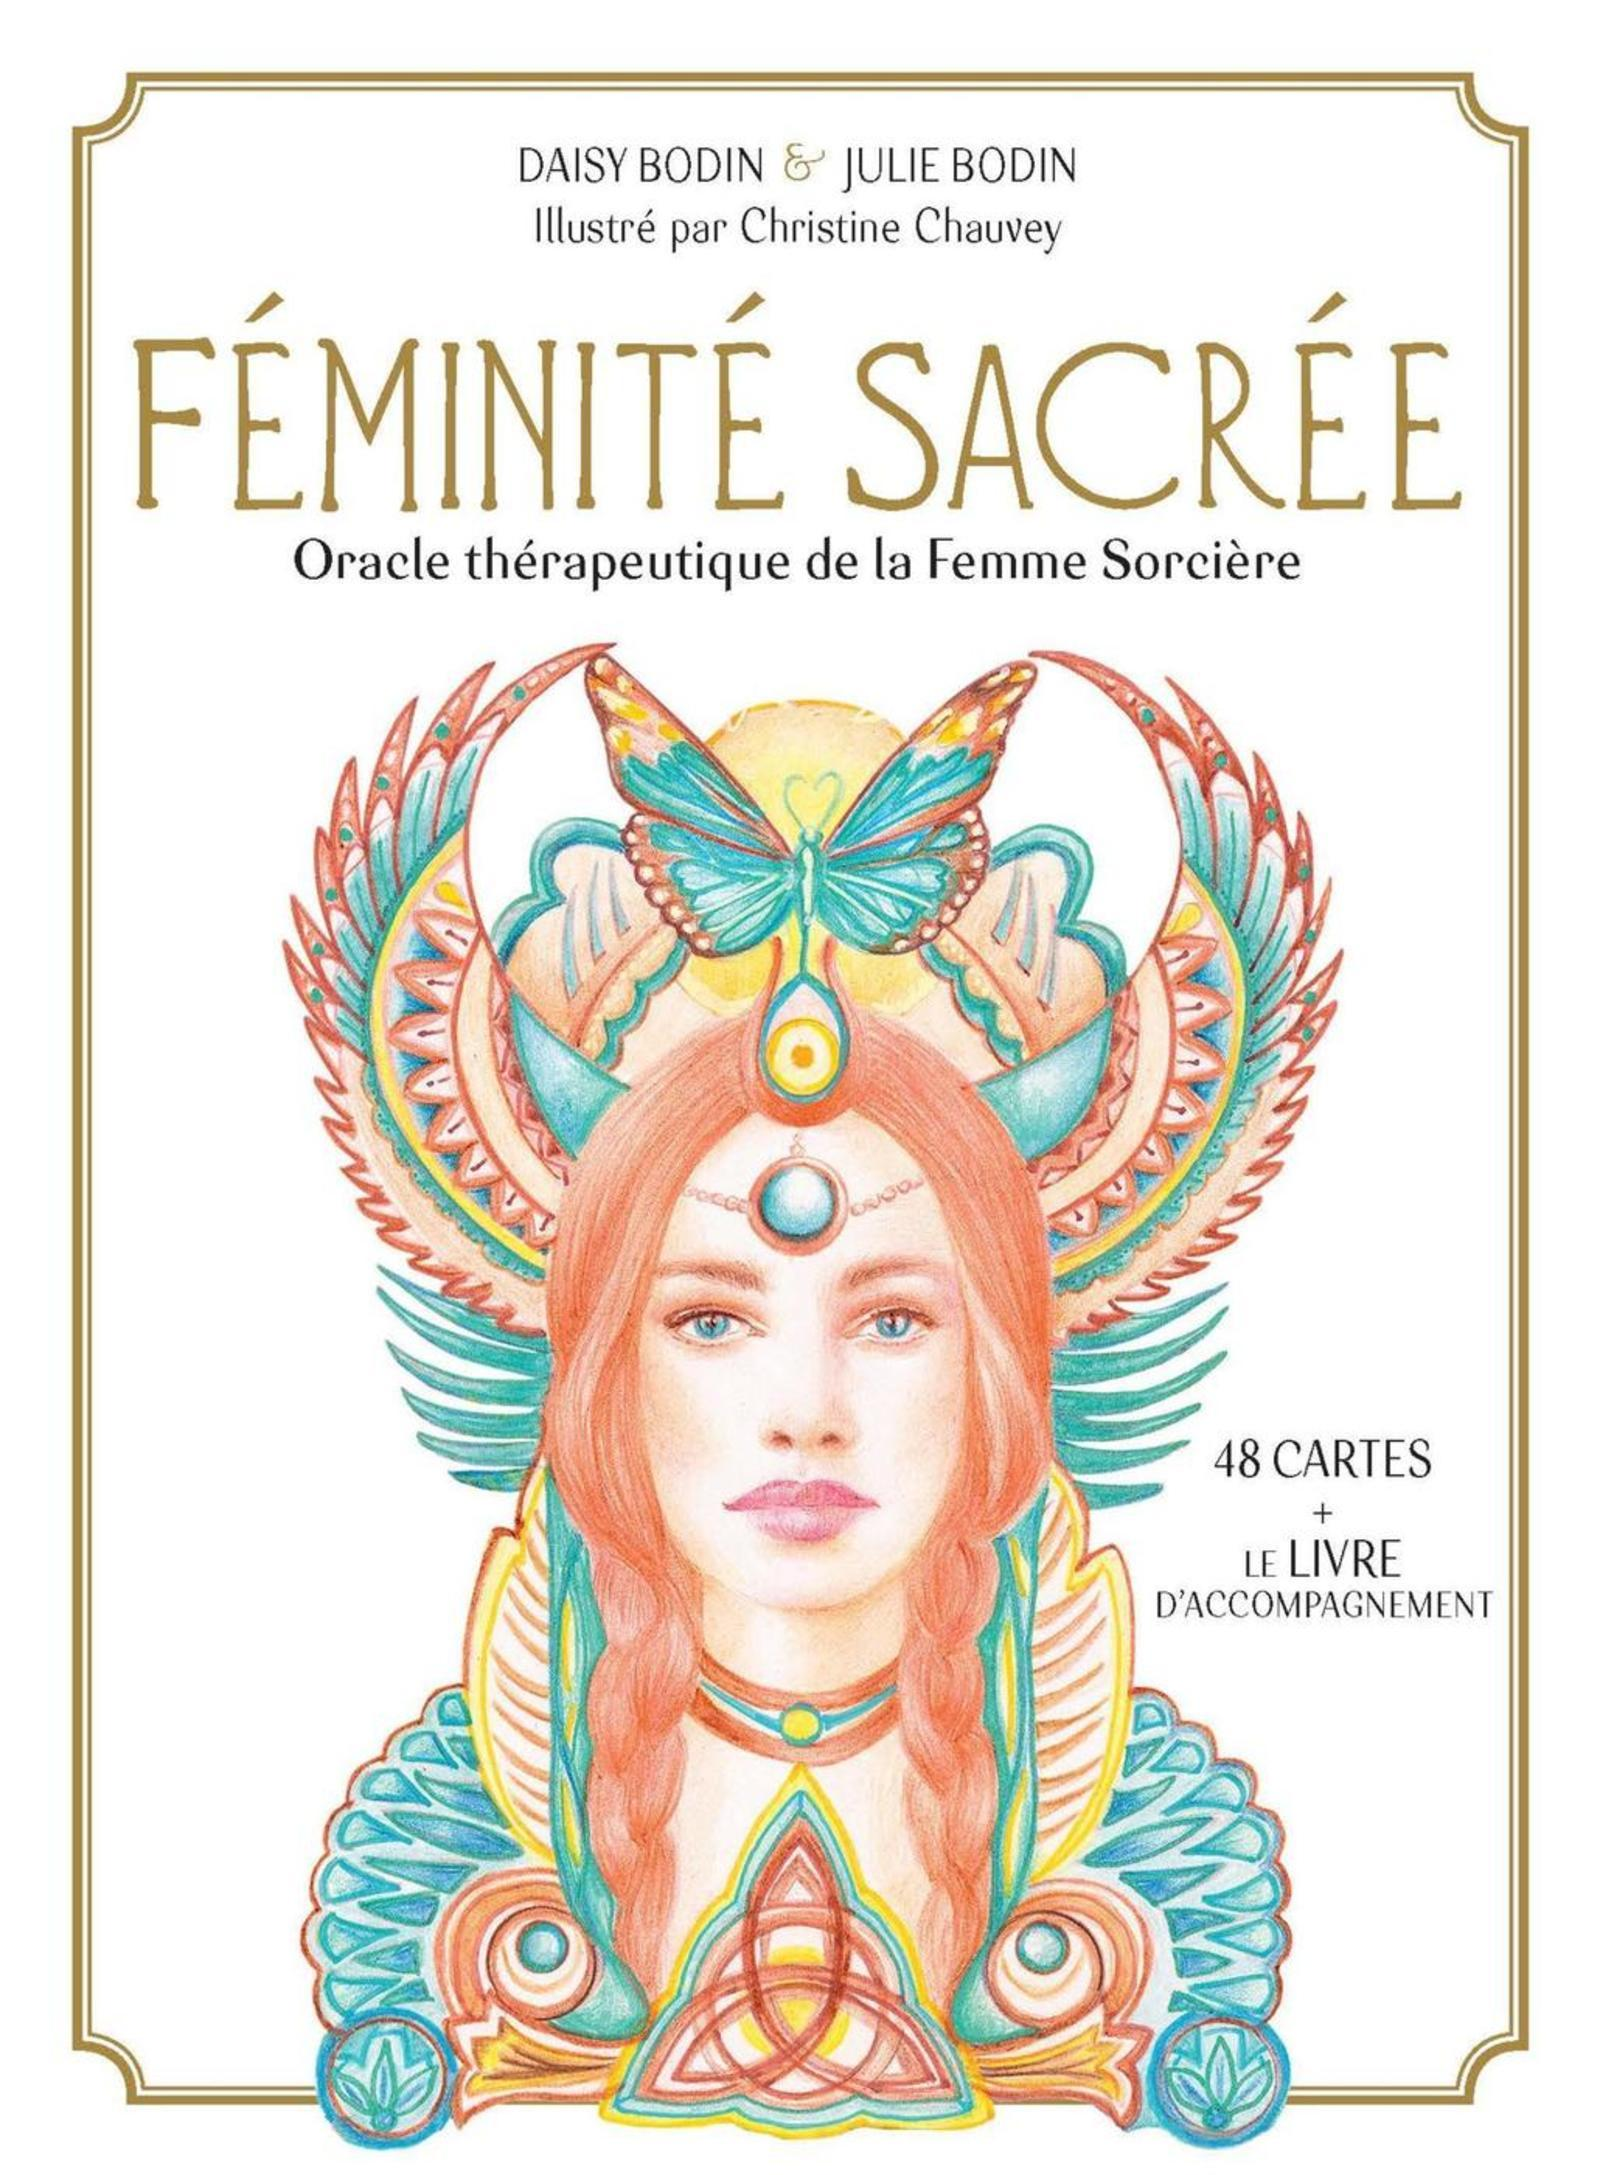 FEMINITE SACREE - ORACLE THERAPEUTIQUE DE LA FEMME SORCIERE. 48 CARTES ORACLE ET LE LIVRE D'ACCOMPAG